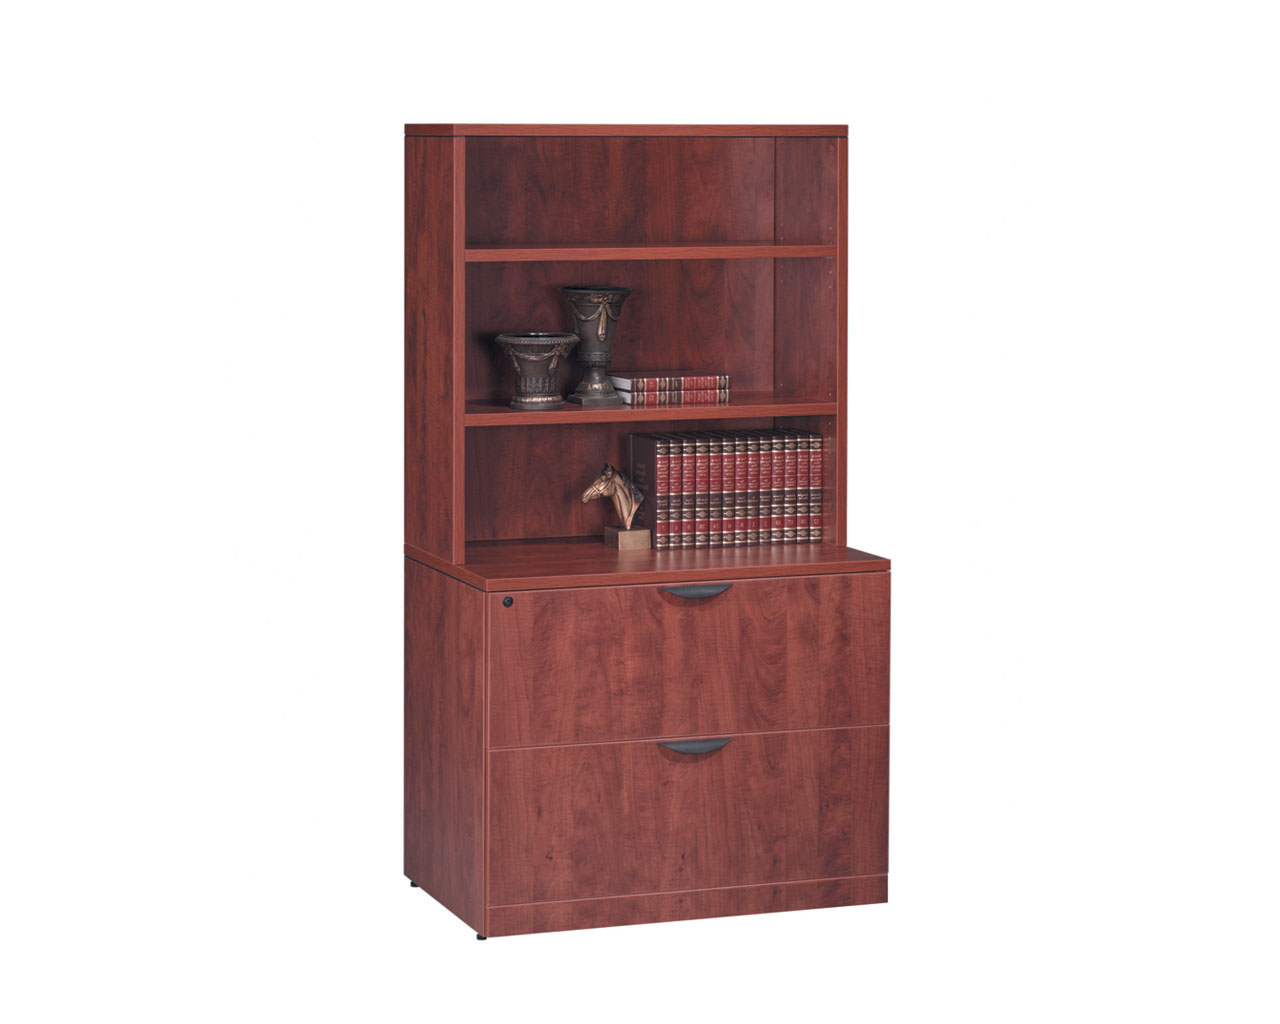 liberty products buffet and with hutch dr furniture mission style hearthstone number hb b item